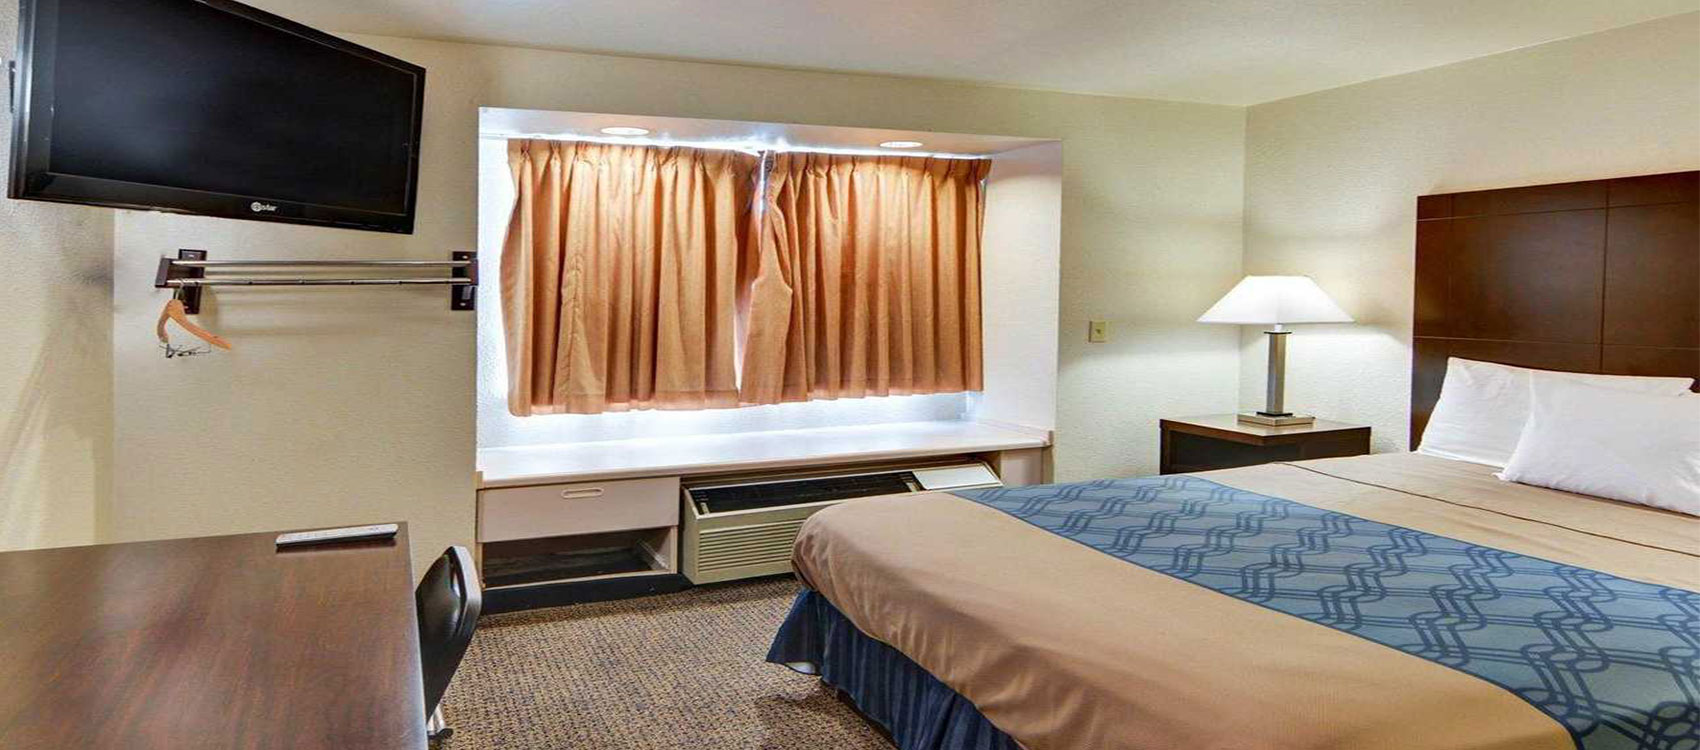 Hotel in Lewisville, TX King Bed Room